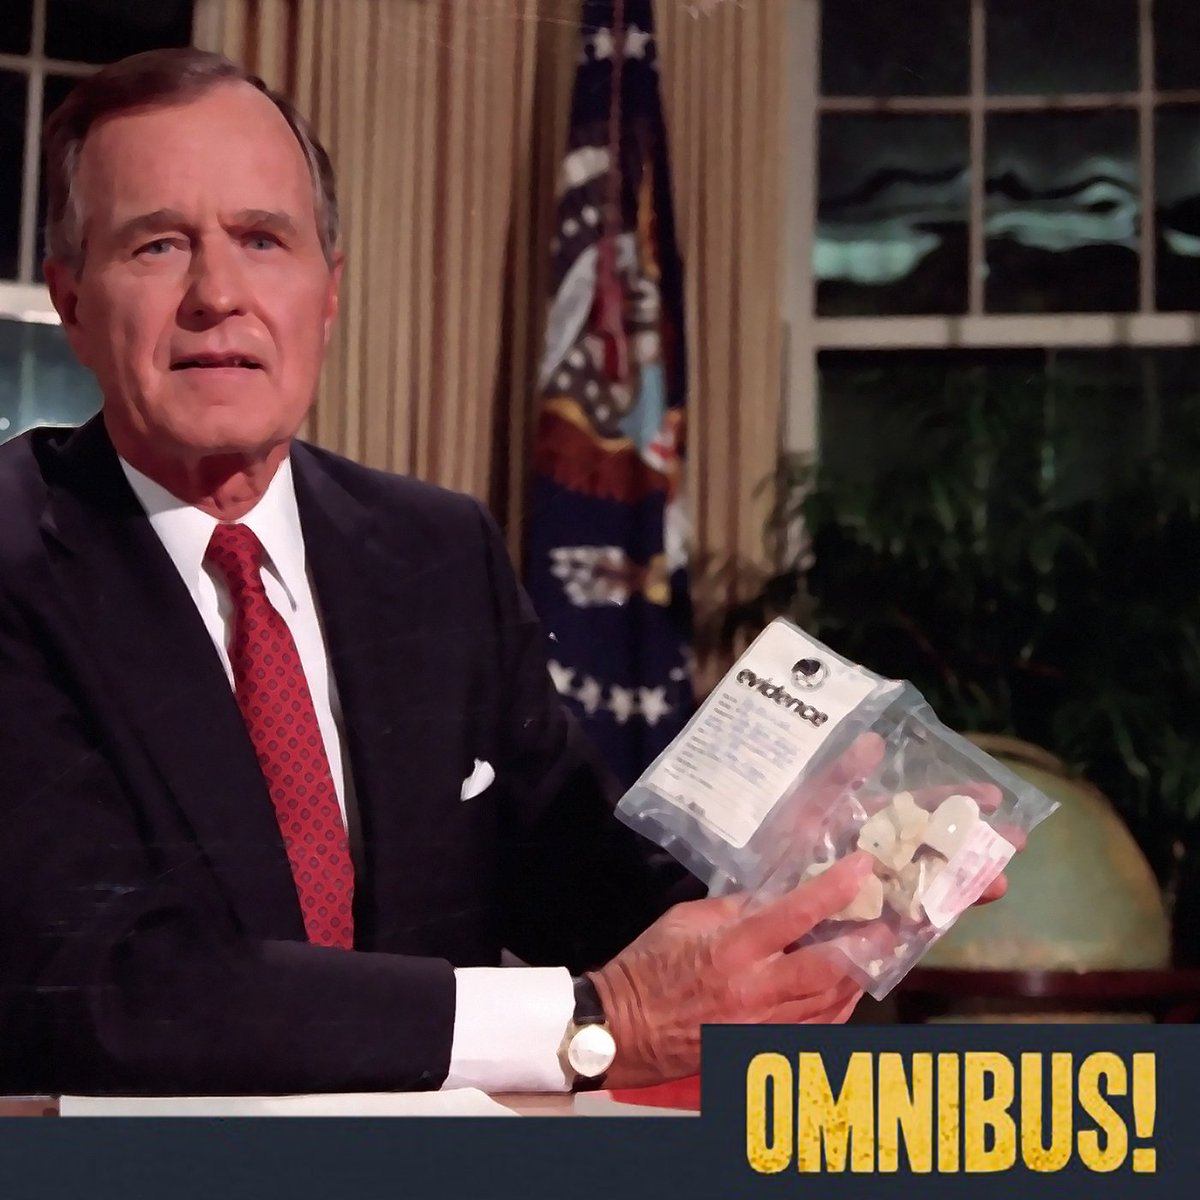 On today's @OmnibusProject: how do you get three ounces of crack into the Oval Office? It takes a village. https://www.omnibusproject.com/225